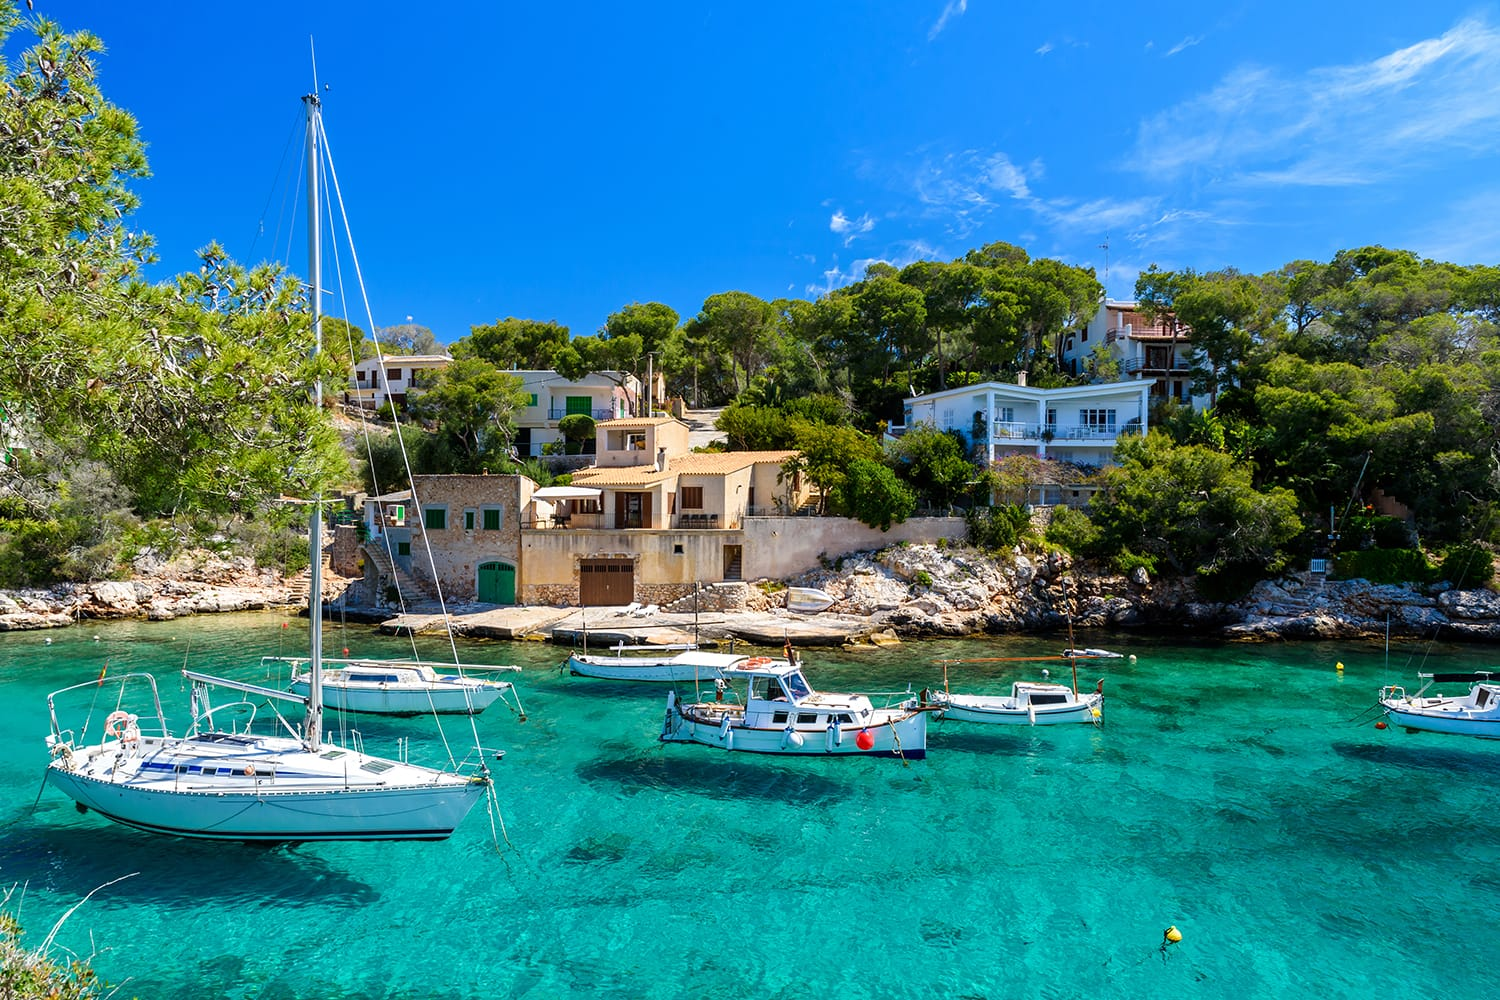 Beautiful coast and harbour of Cala Figuera in Mallorca, Spain